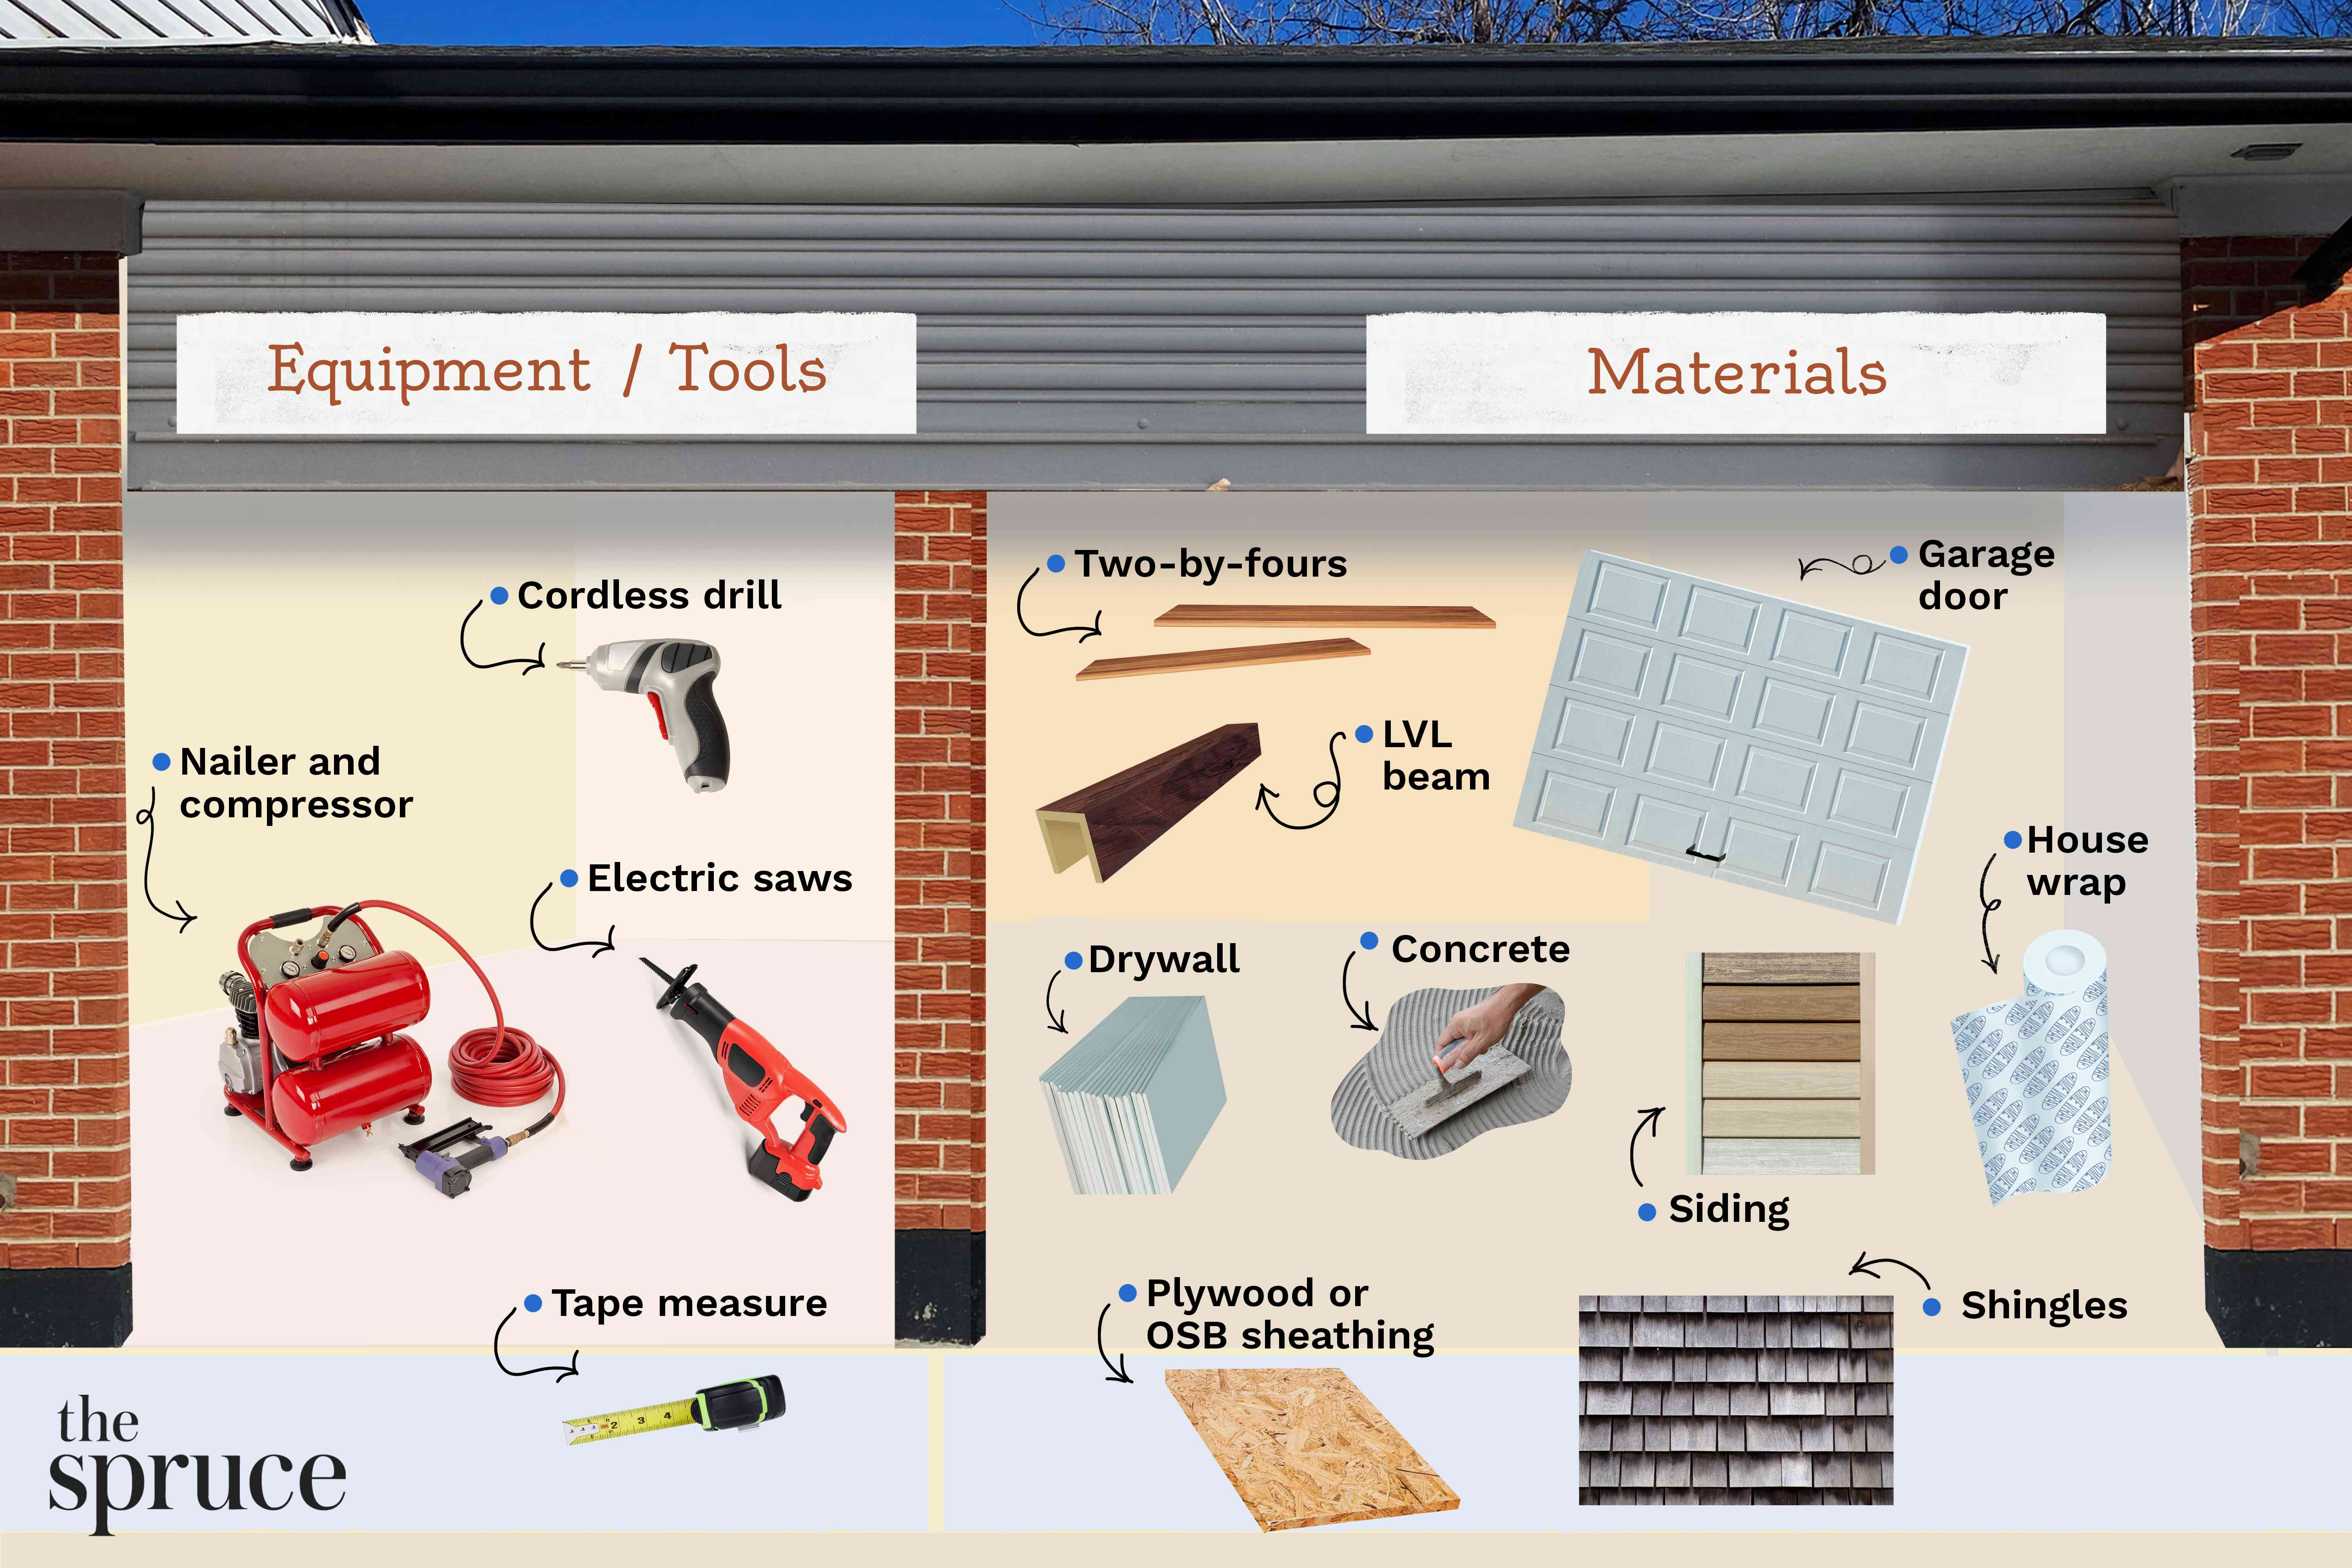 Materials and tools for building a garage photo composite